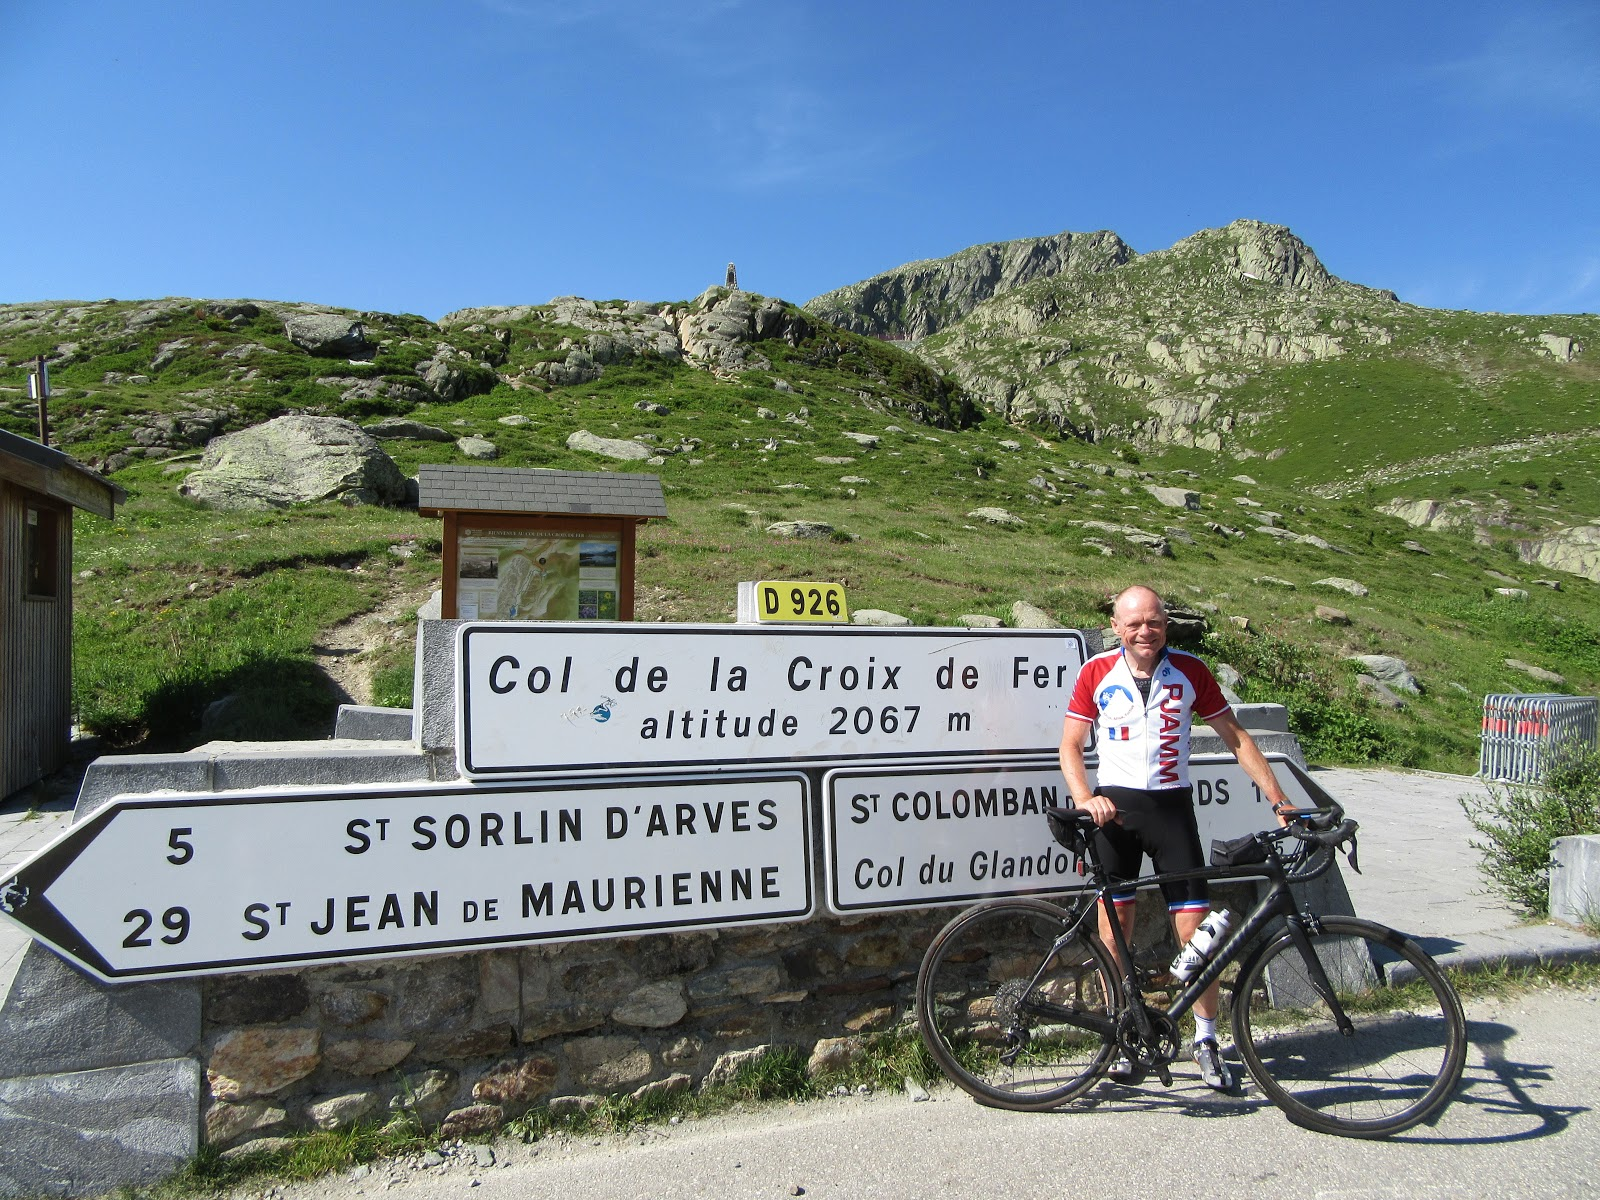 Cycling Col de la Croix de Fer, West  - John Johnson of PJAMM Cycling at Col sign